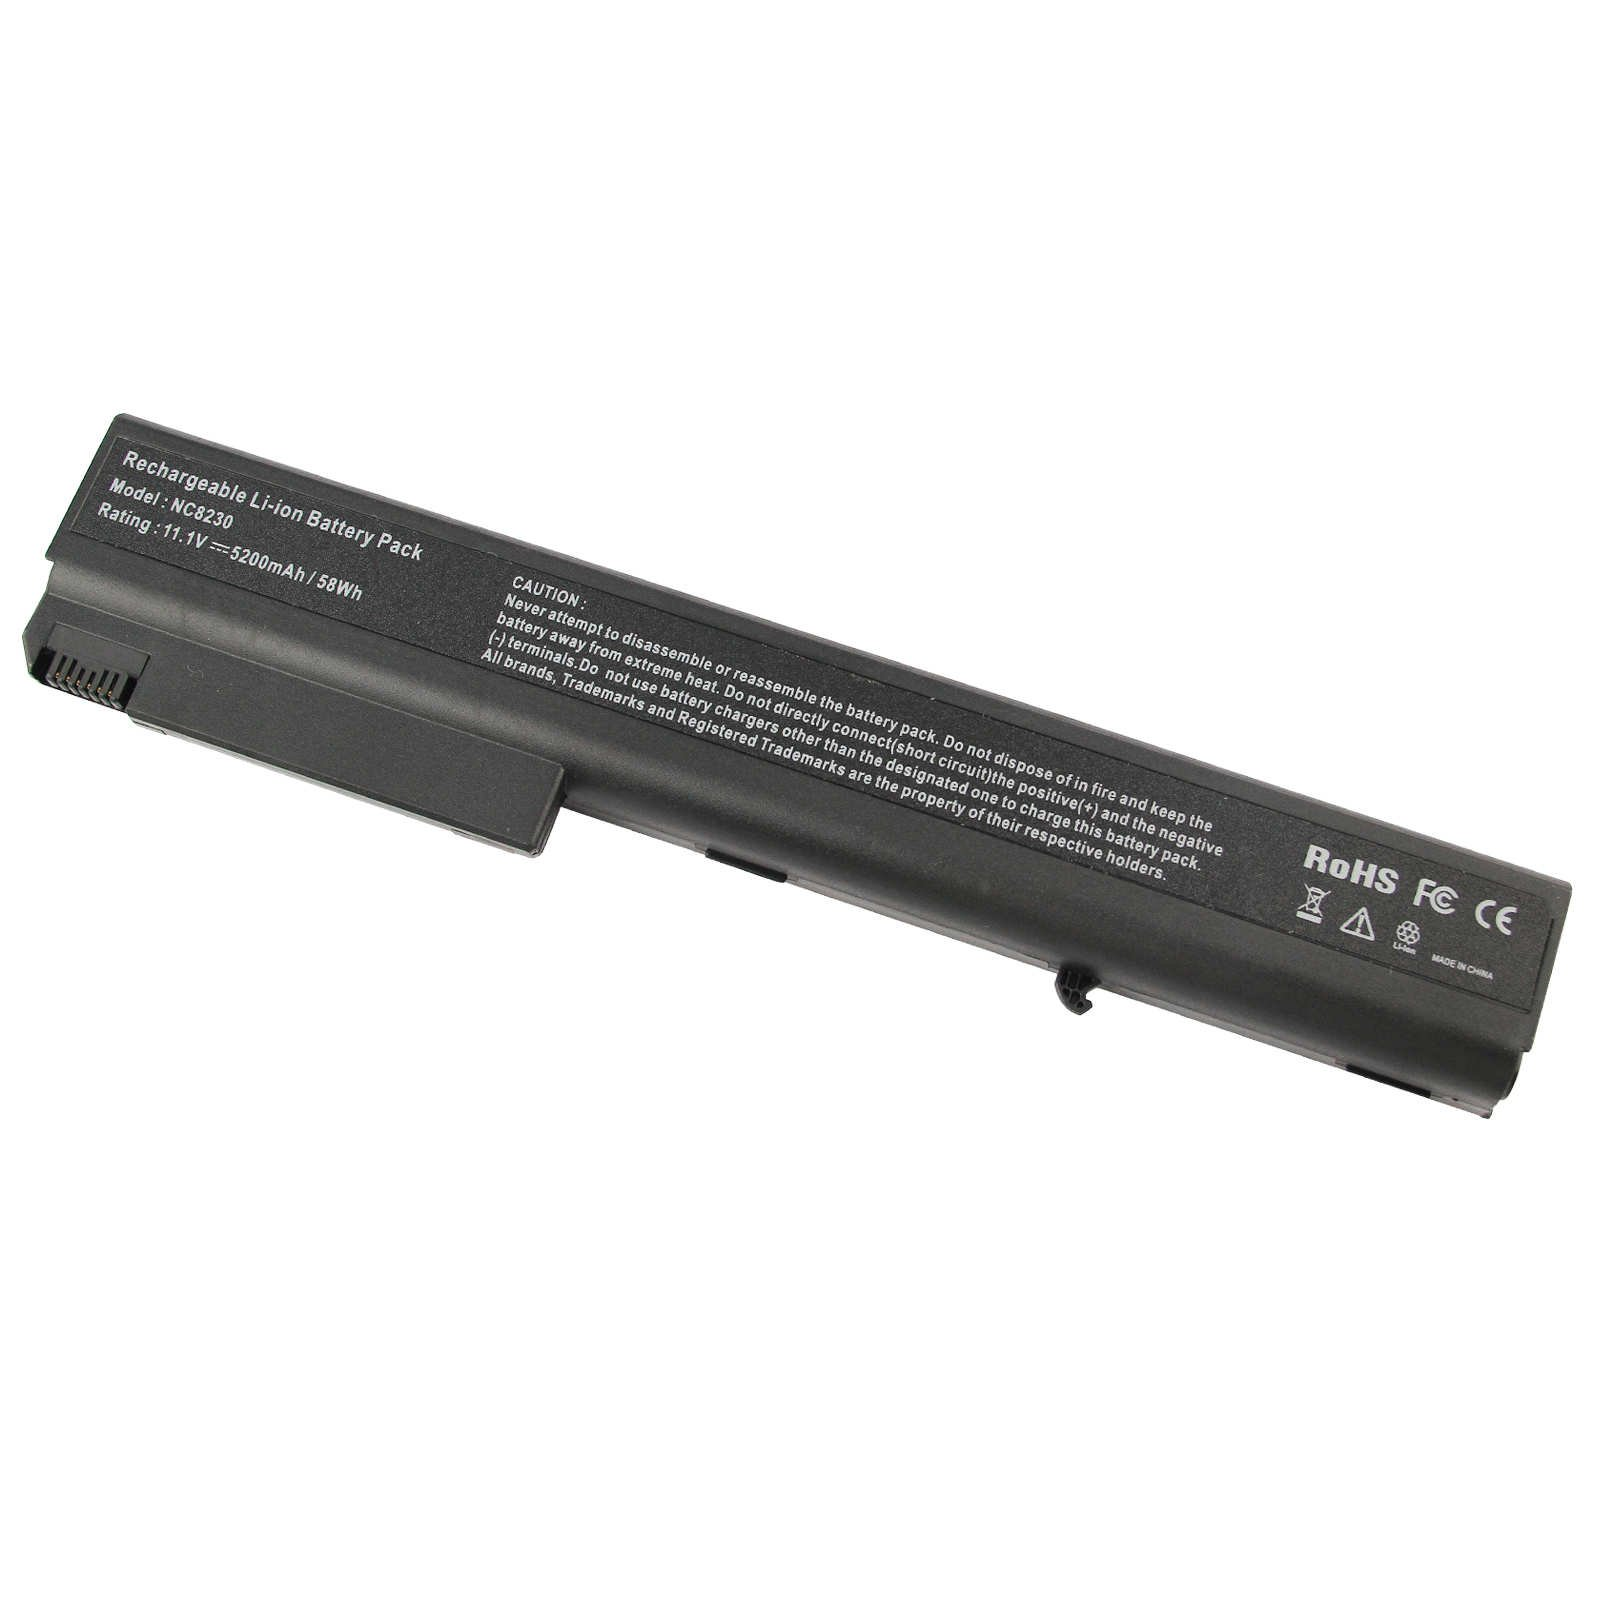 [10-Pack] New Compaq NX9420 Laptop Battery for HP Compaq 8510 8510W 8710W 8710P 8510P NC8430 NX7400 NX8200 NX8230 NX9400, fits P/N PB992A - 12 Months Warranty [6-Cell Li-ion 5200mAh]